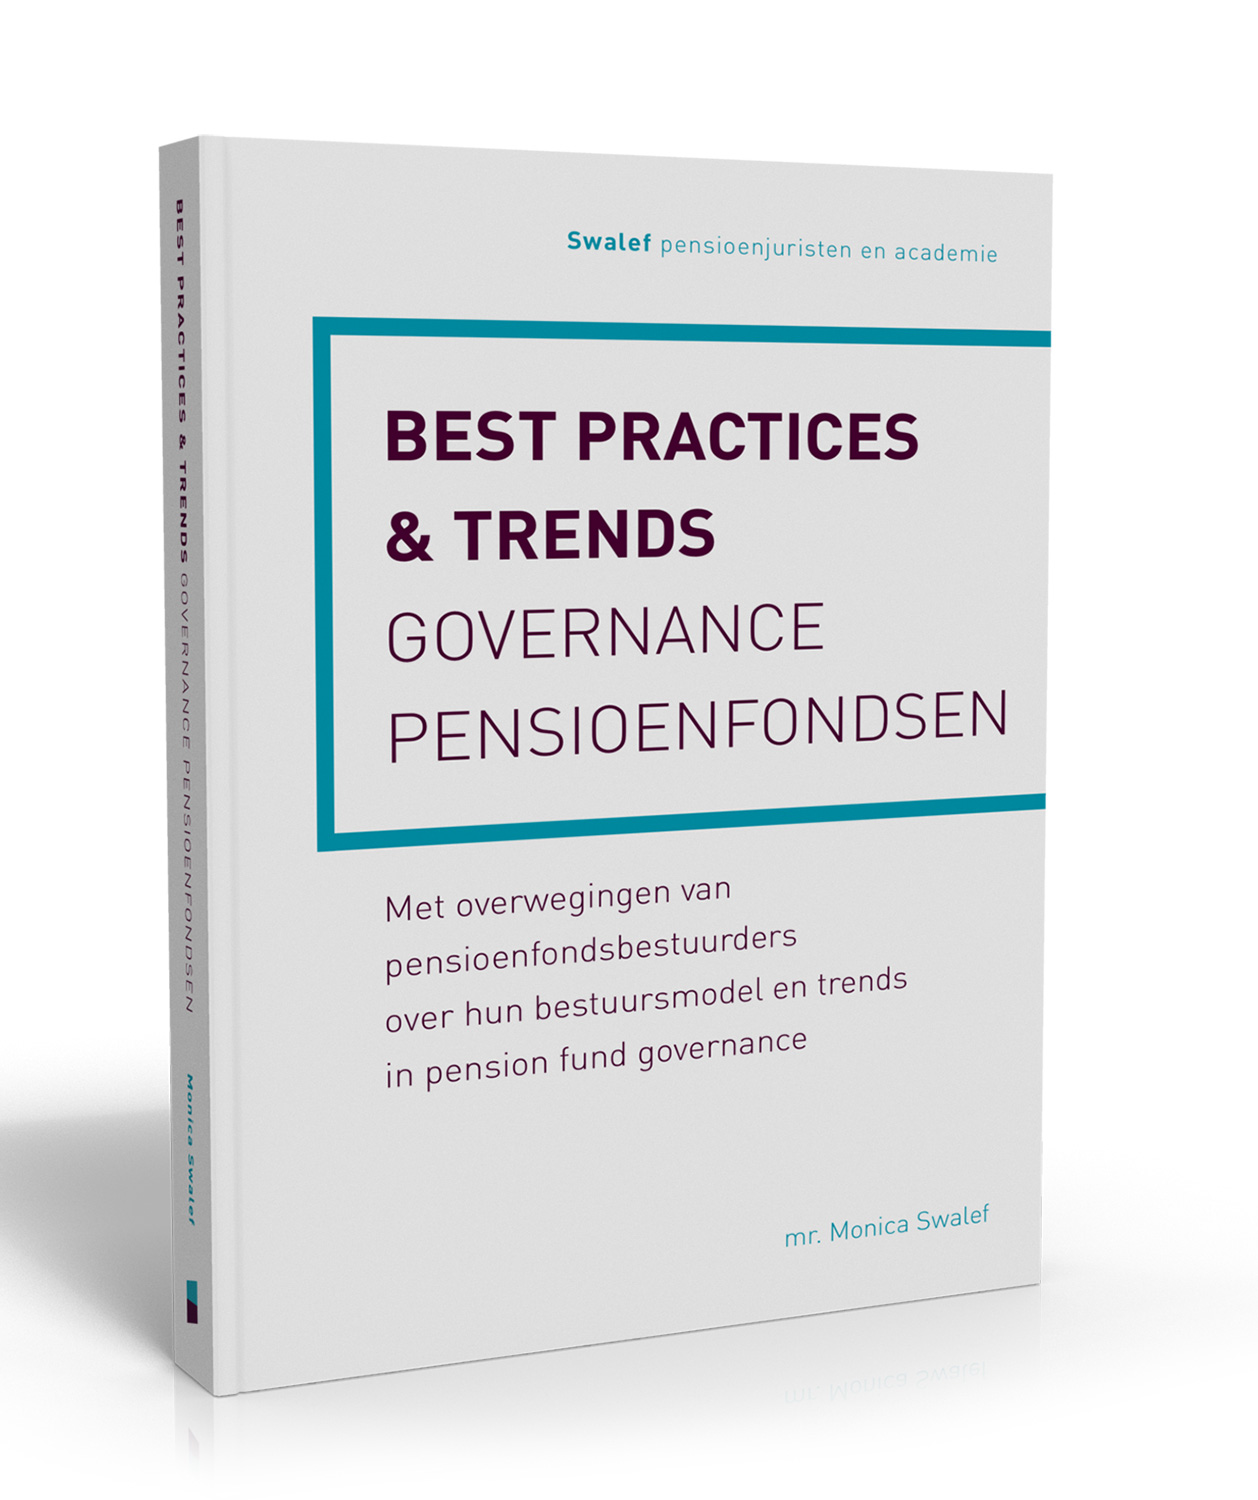 Best practices trends governance pensioenfondsen